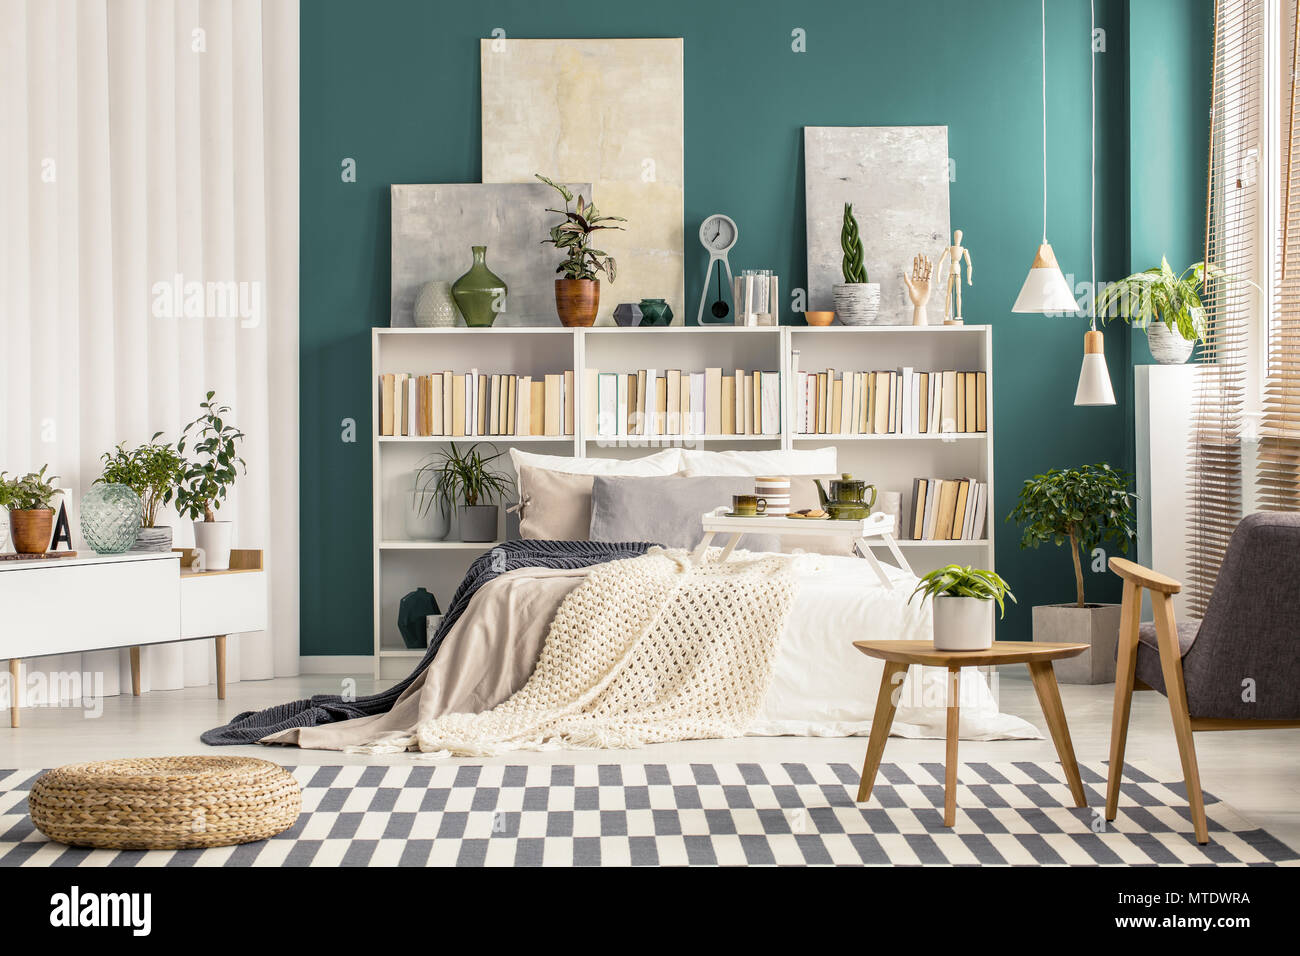 Checkered Rug And Modern Wooden Furniture In A Stylish Bedroom Interior For Art And Nature Lover Stock Photo Alamy